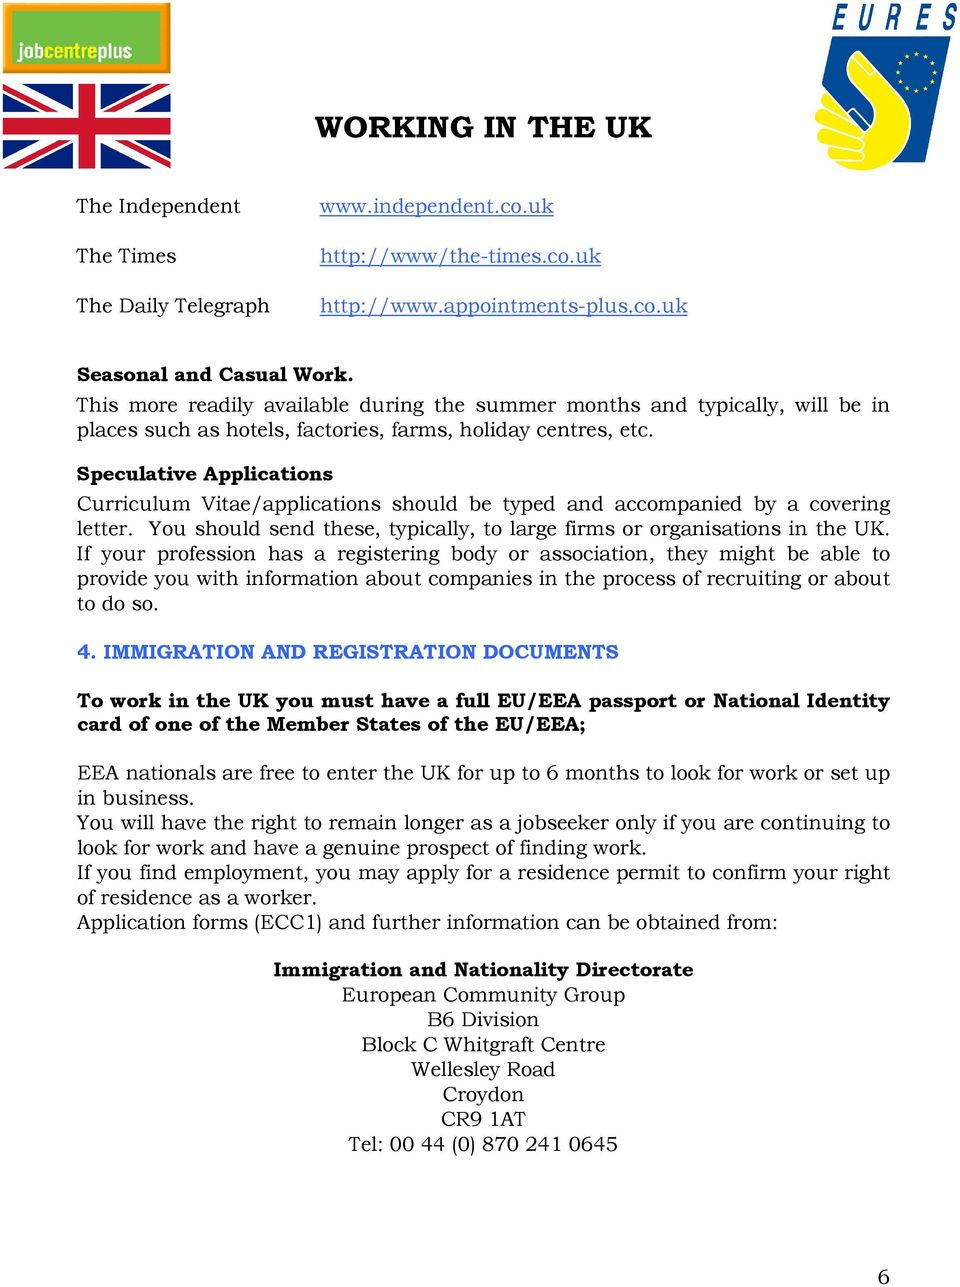 Speculative Applications Curriculum Vitae/applications should be typed and accompanied by a covering letter. You should send these, typically, to large firms or organisations in the UK.